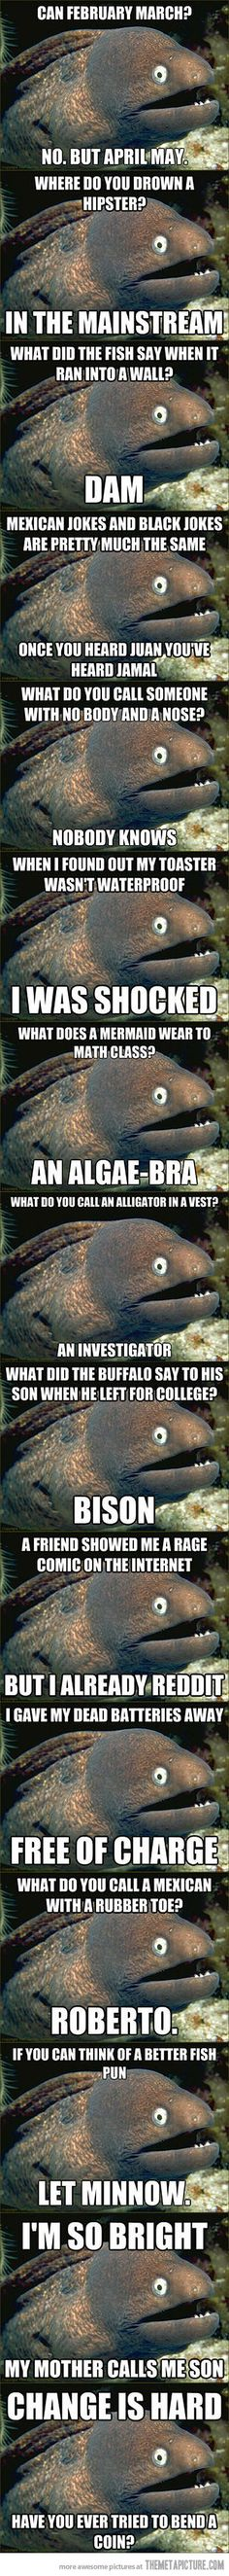 The Best of Bad Joke Eel idk why I think this is so flipping hilarious